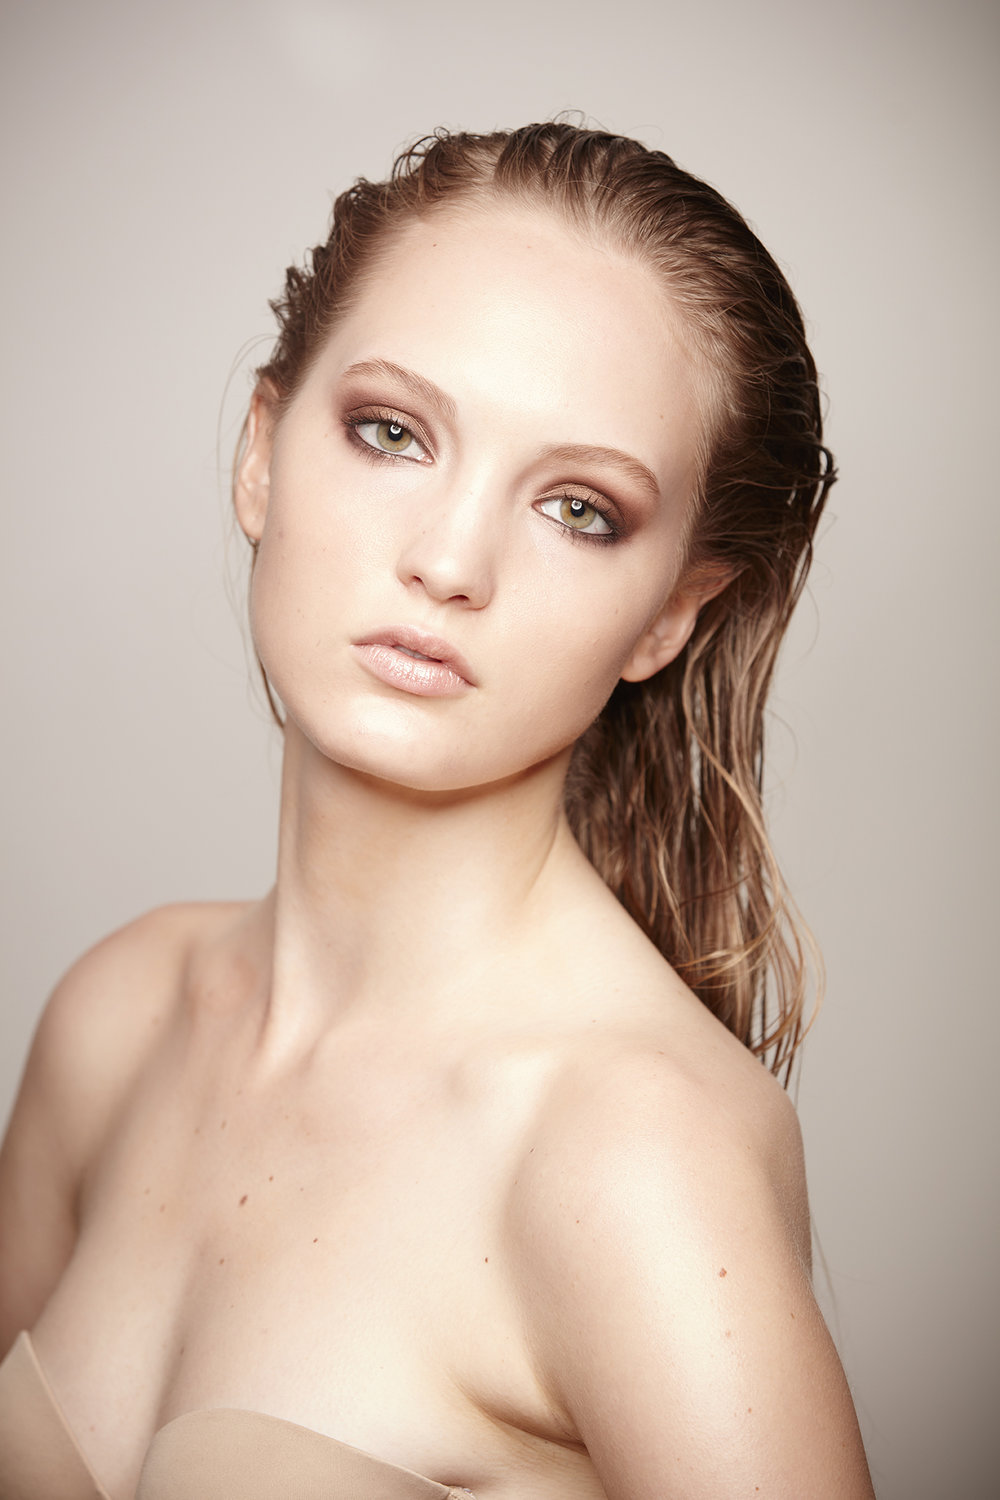 woman in strapless bra with wet hair and neutral makeup